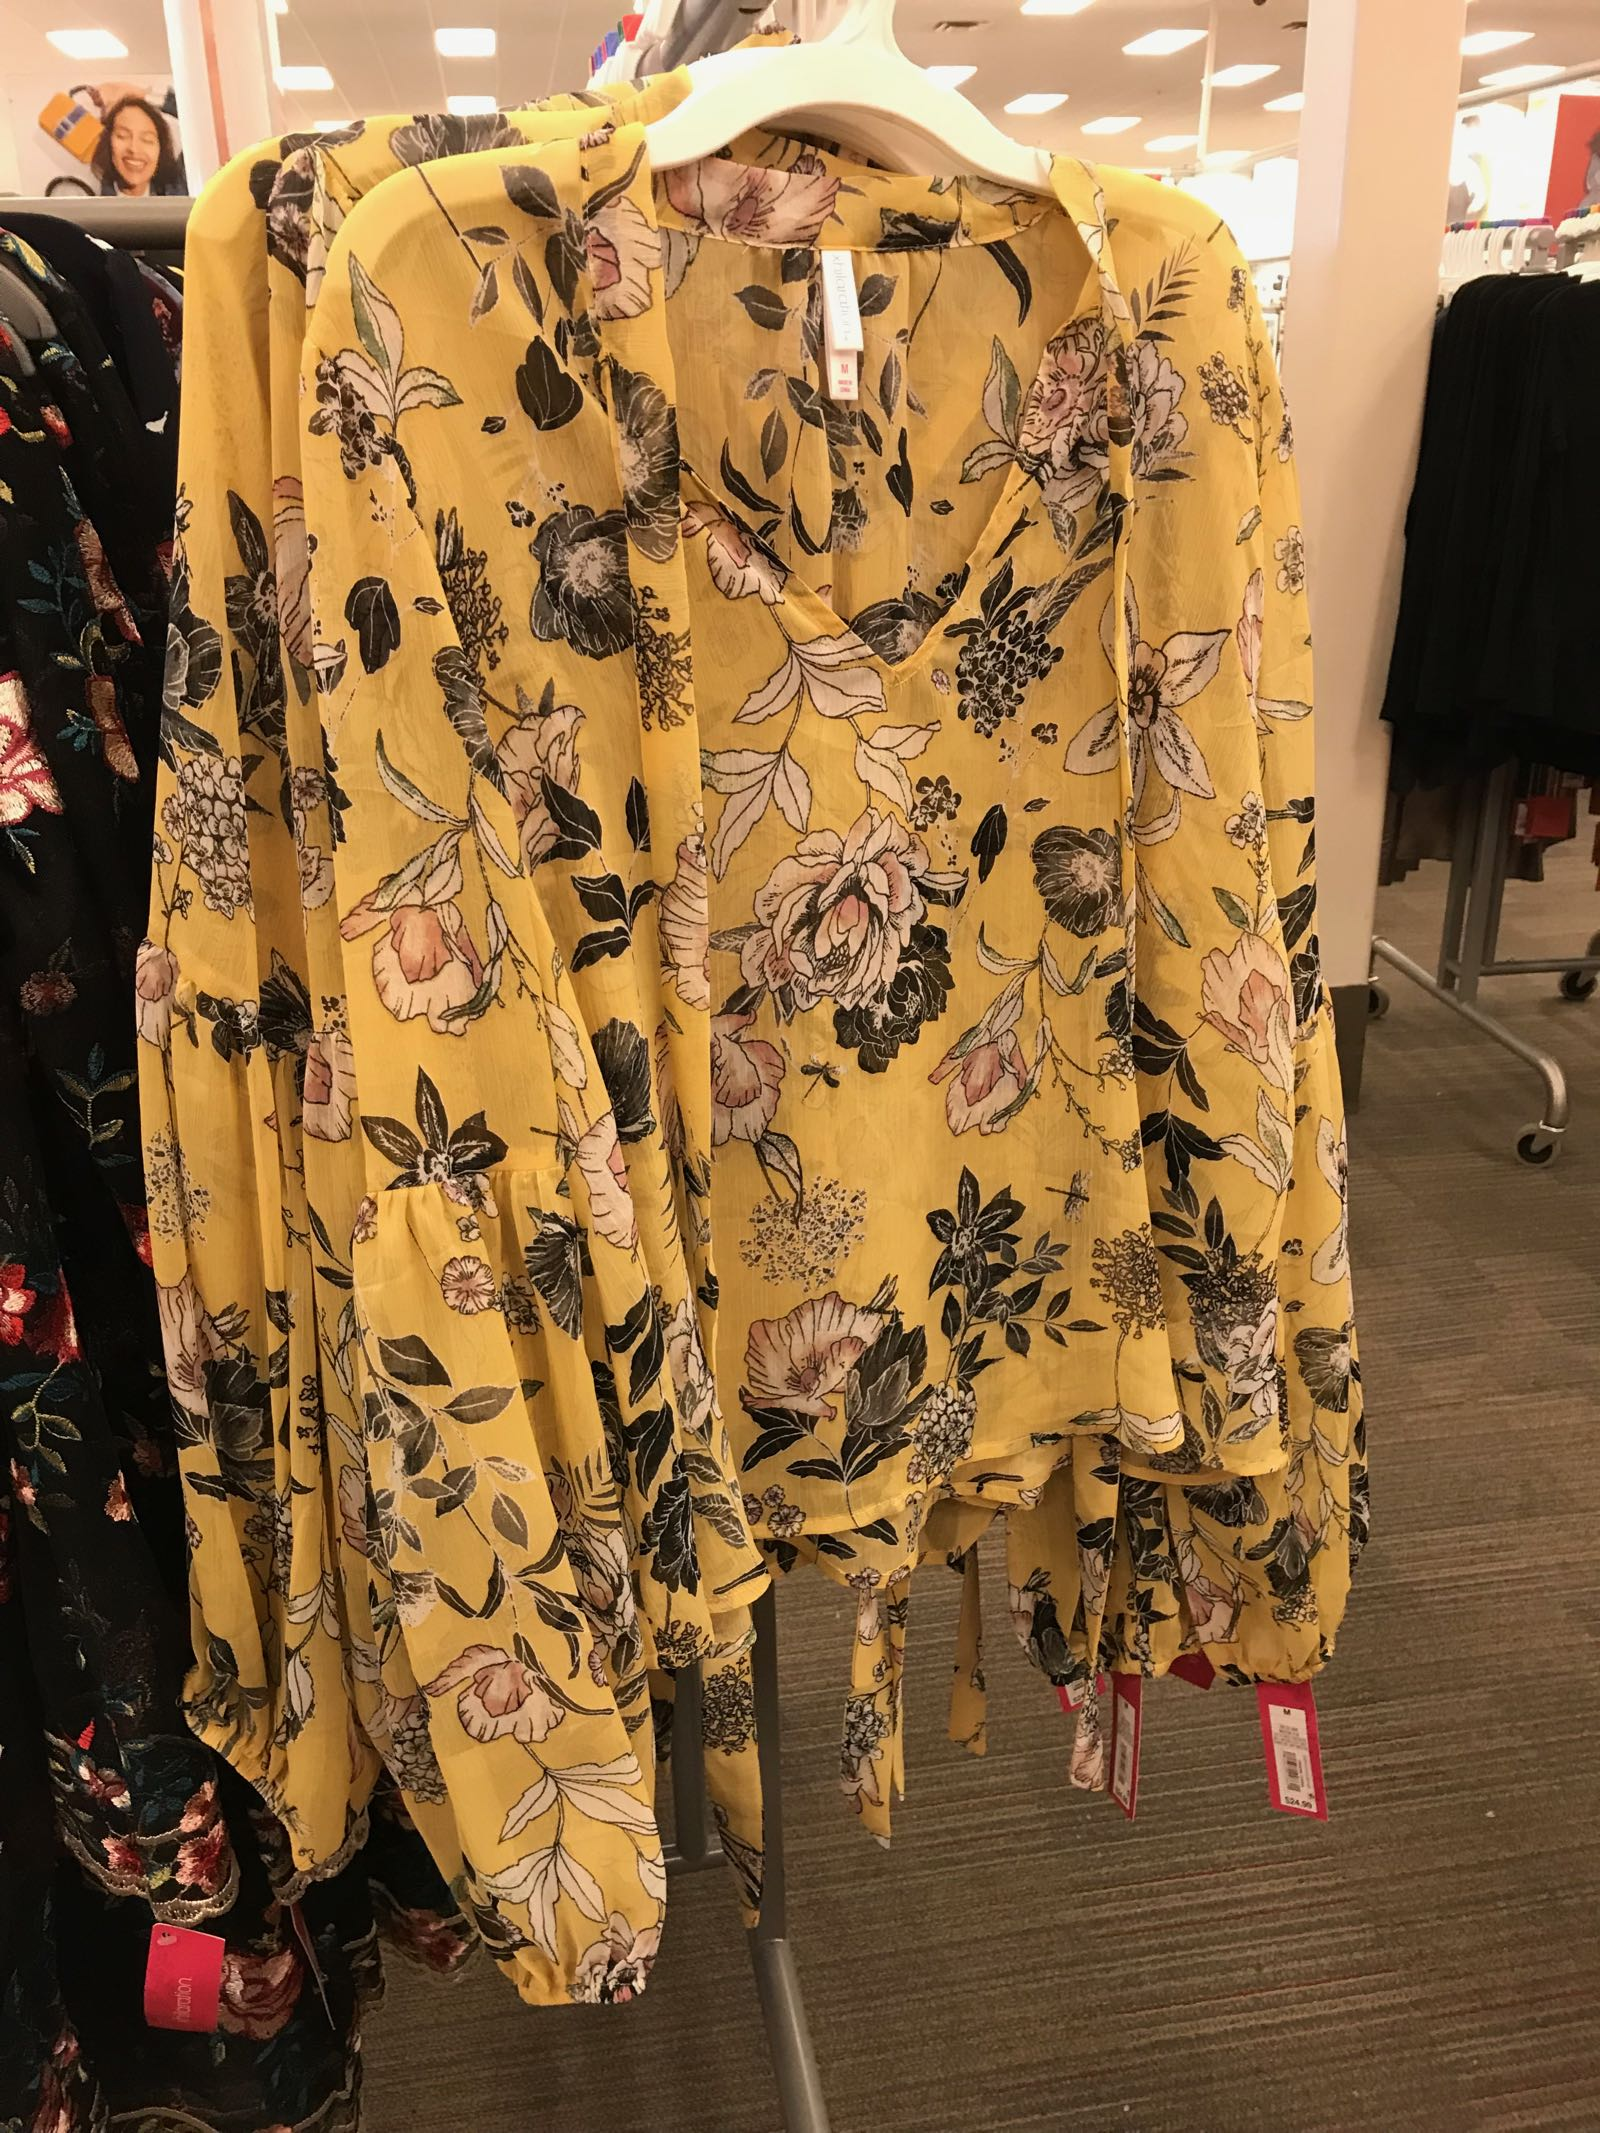 The cutest spring fashions at Target, from kimonos to babydoll dresses - and maternity styles too